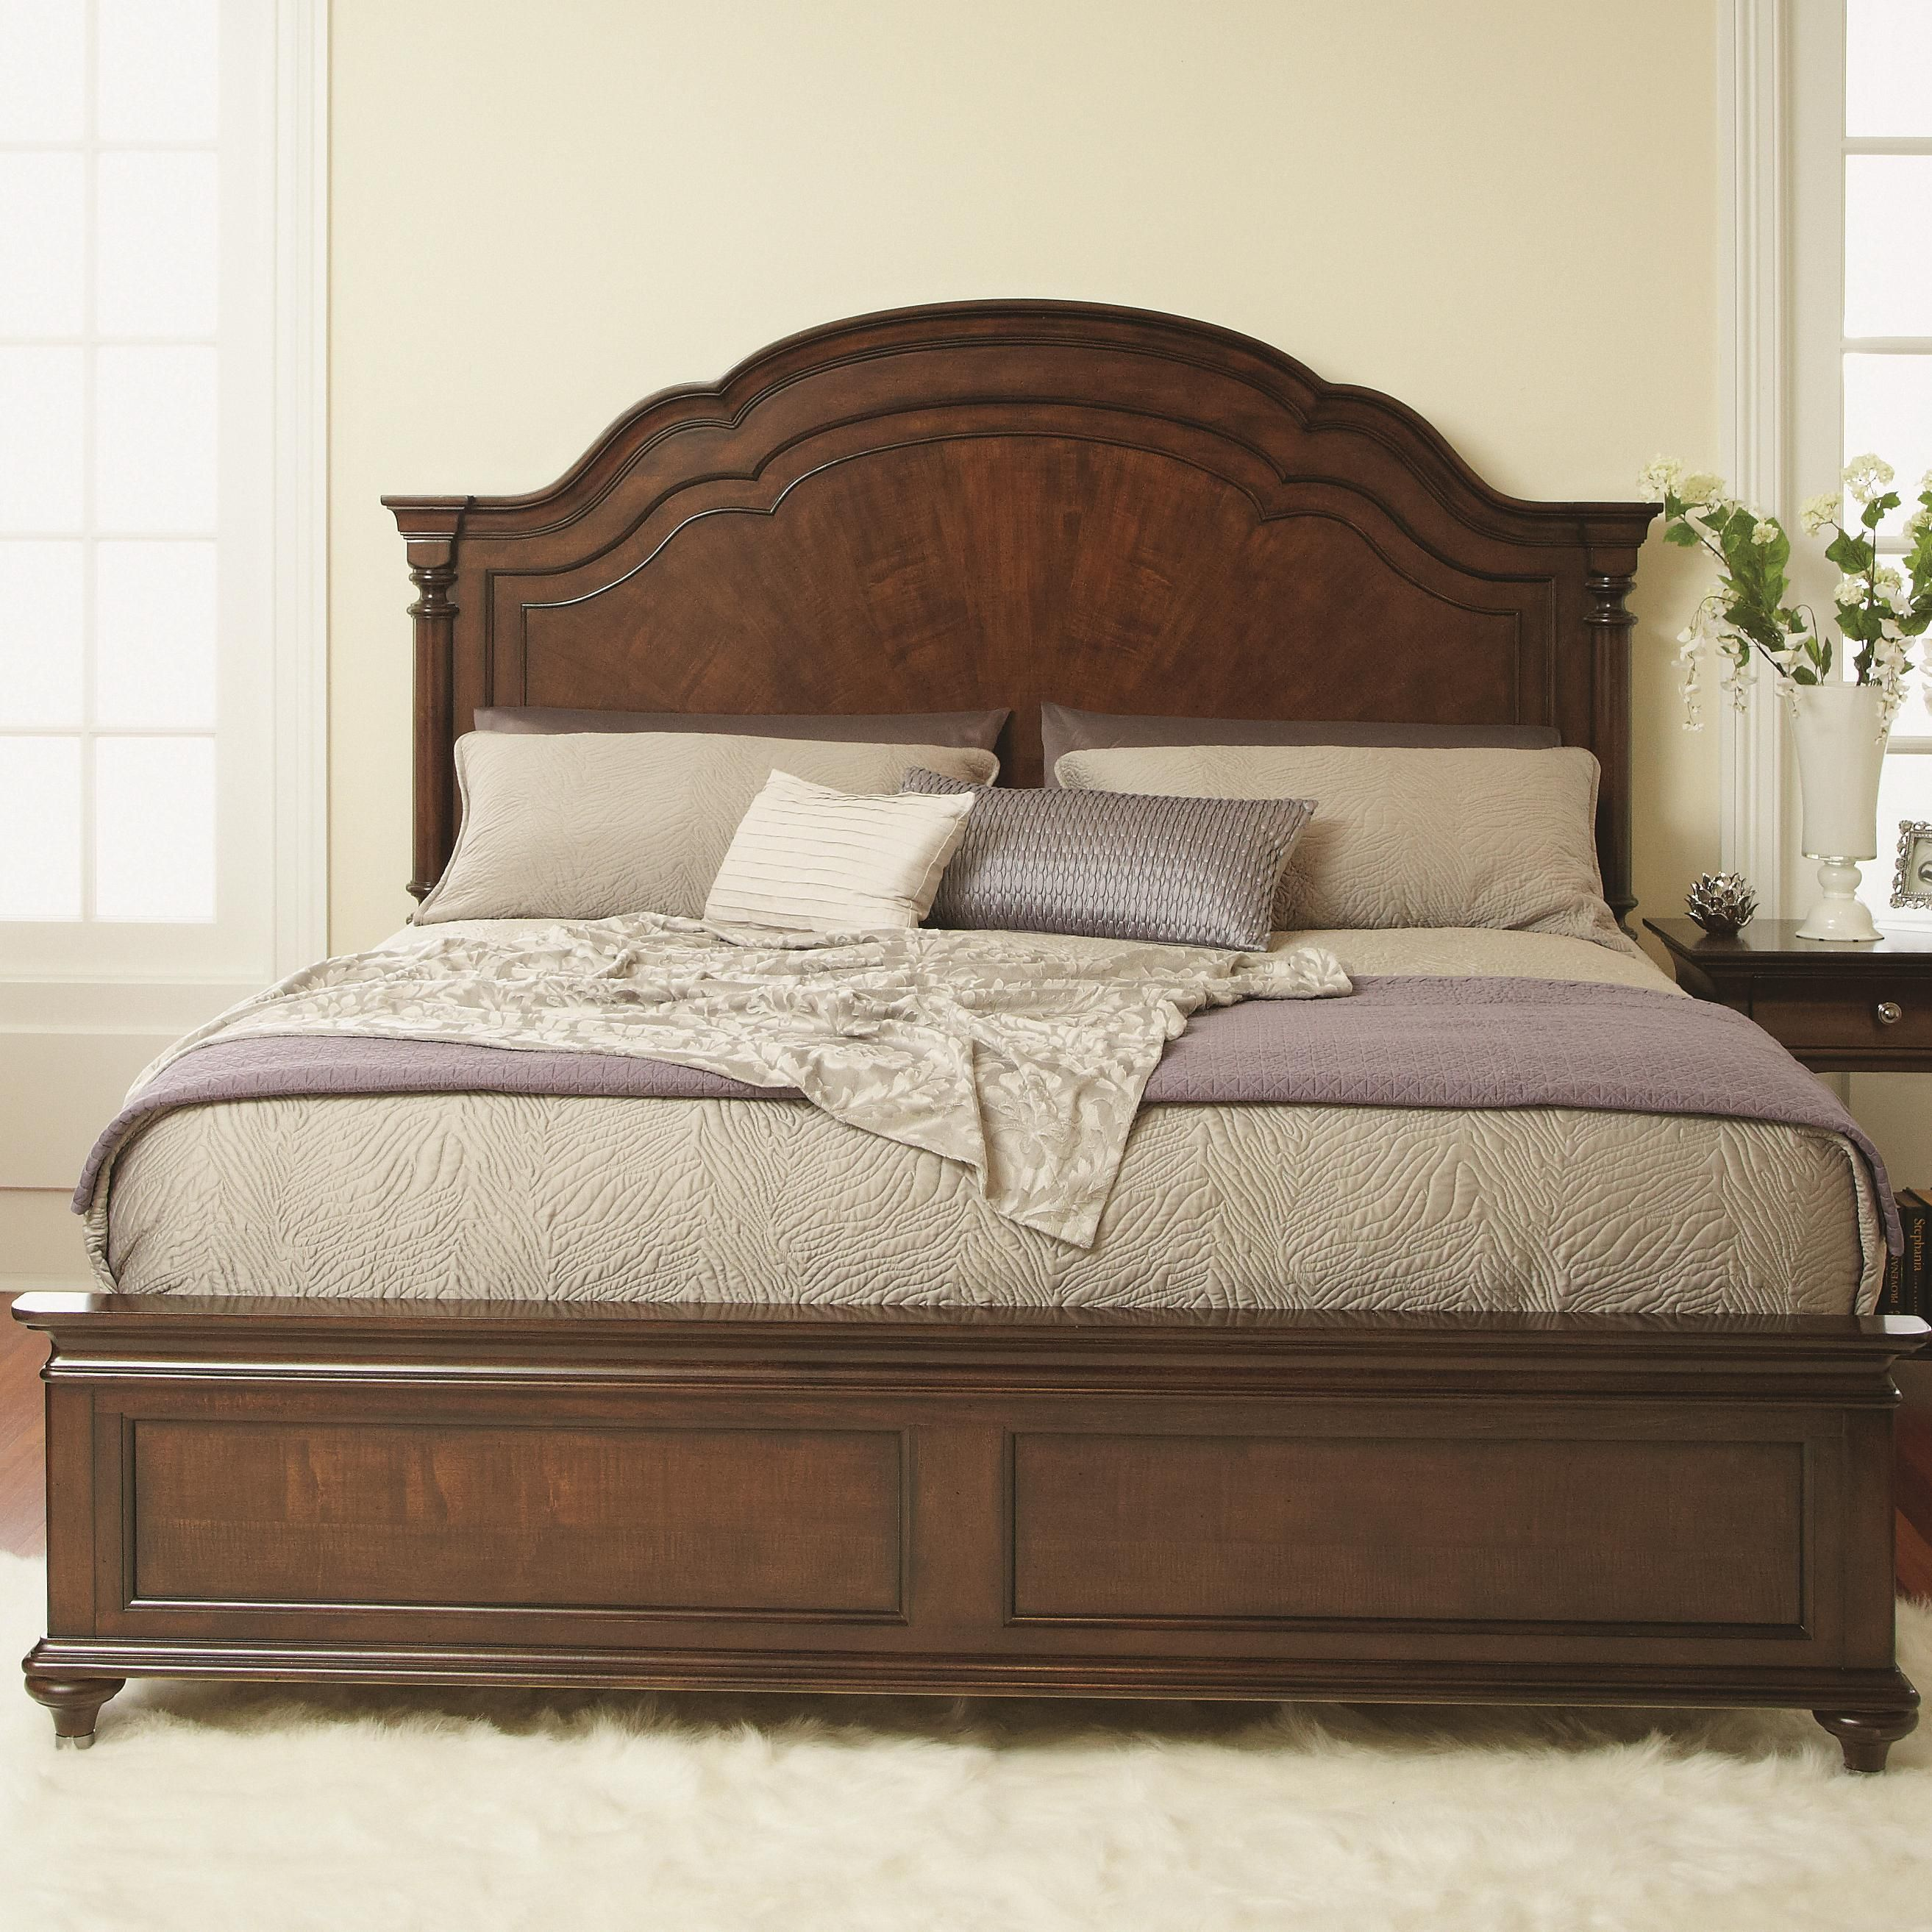 Sycamore Cove King Panel Bed by Folio 21   Ideas for the House ...